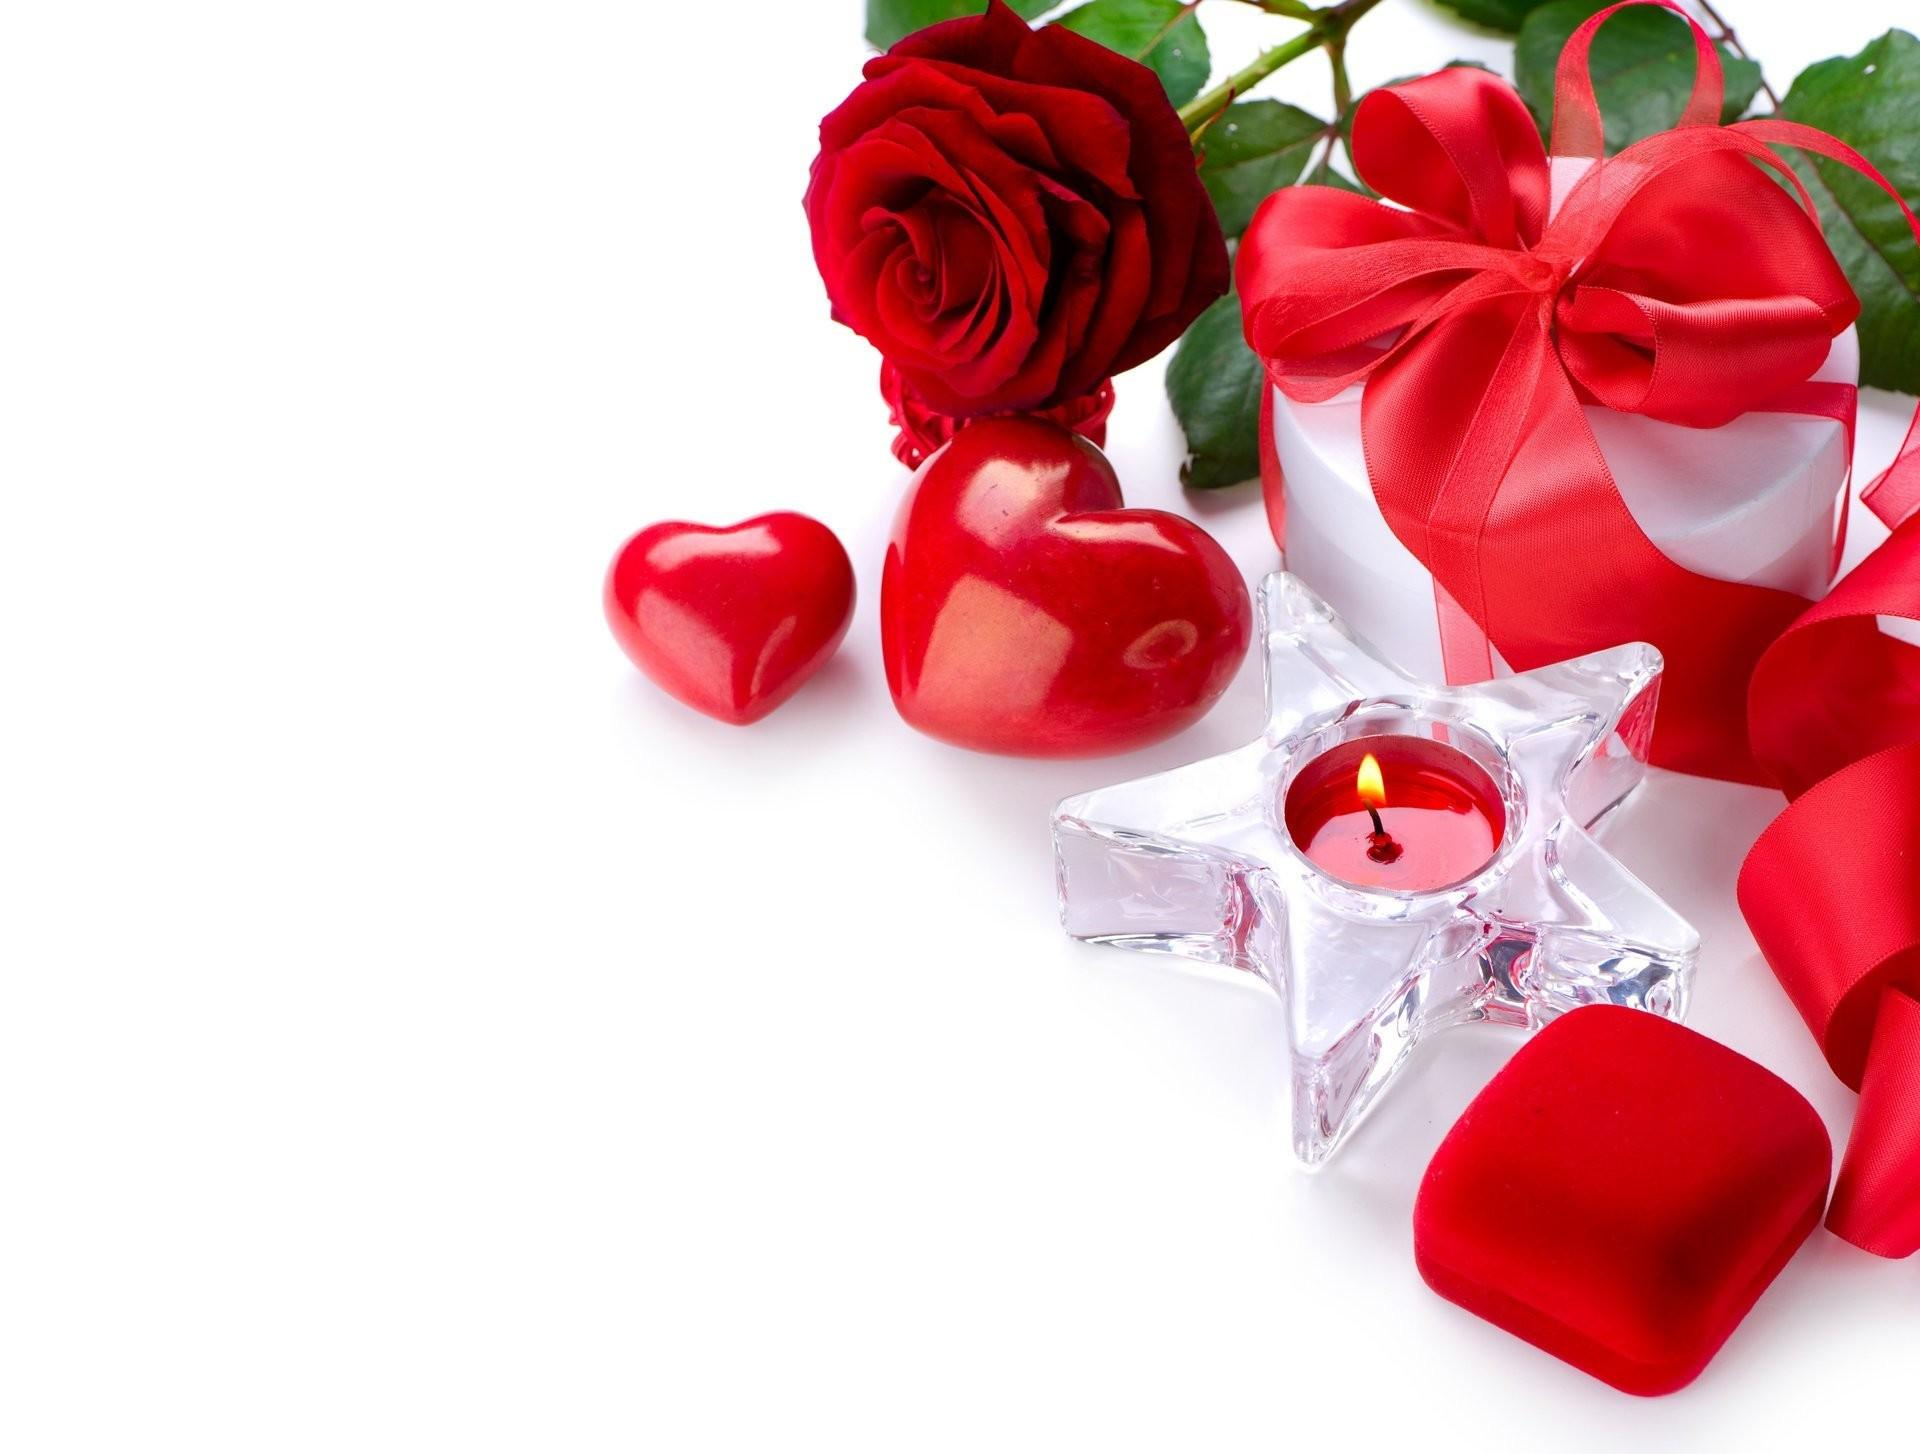 Holiday Valentine Day Candles Roses Gifts Heart Bow